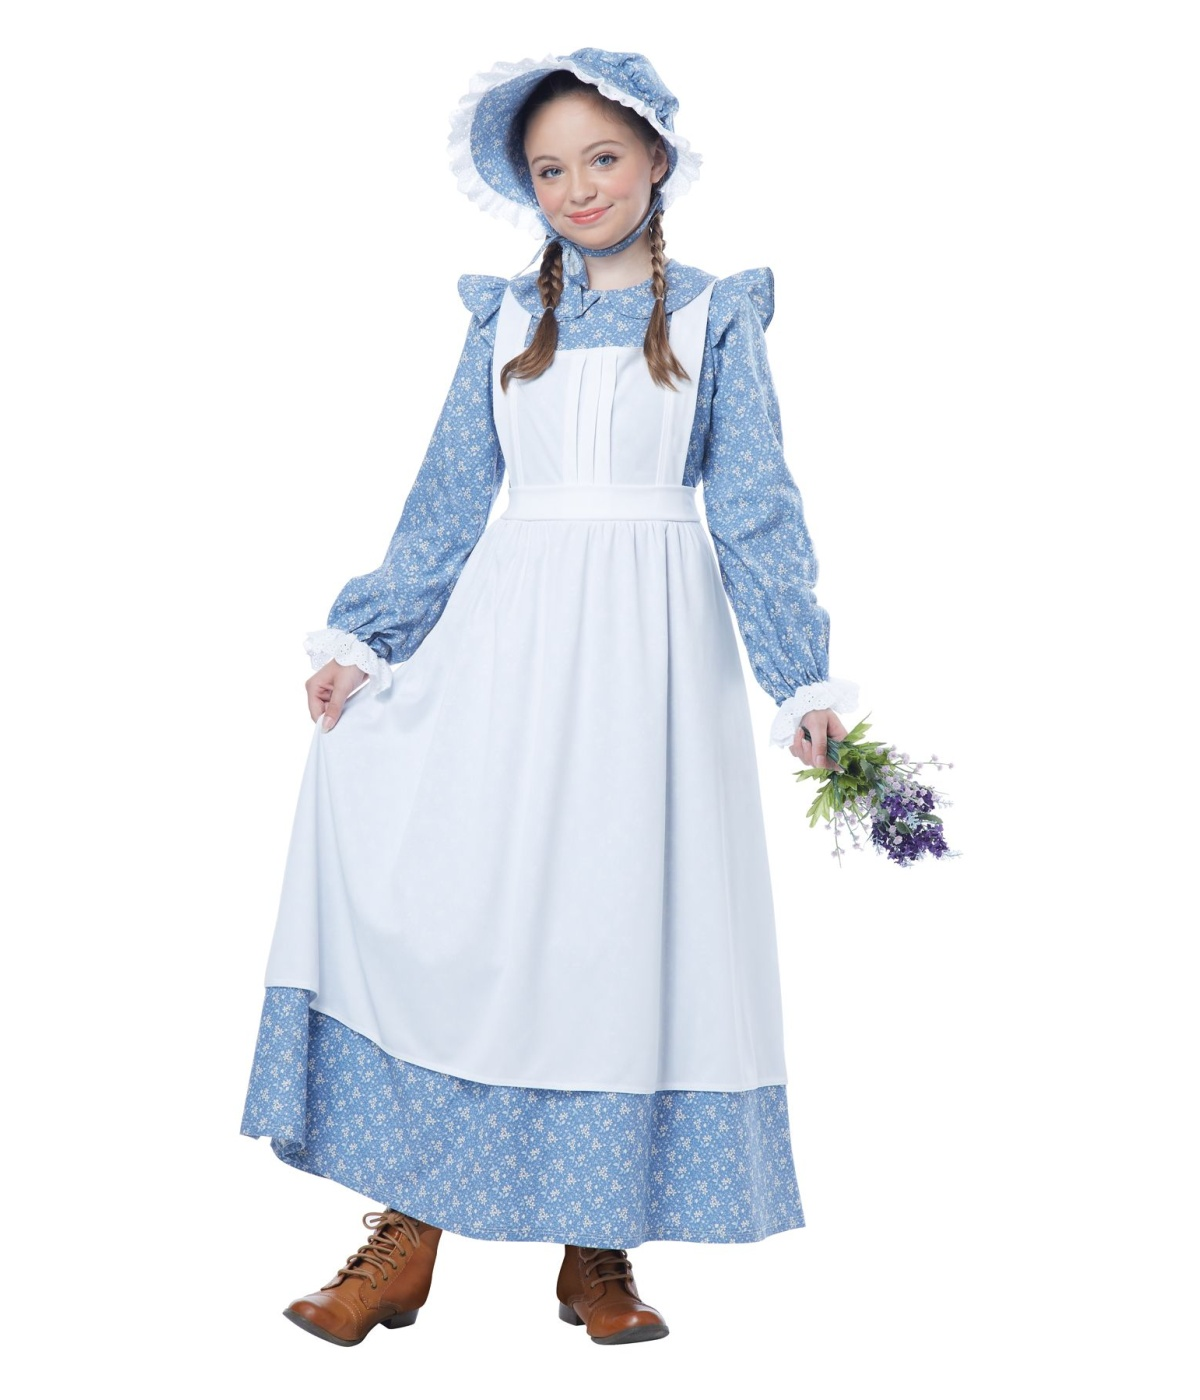 Kids Charming Pioneer Girl Dress Costume